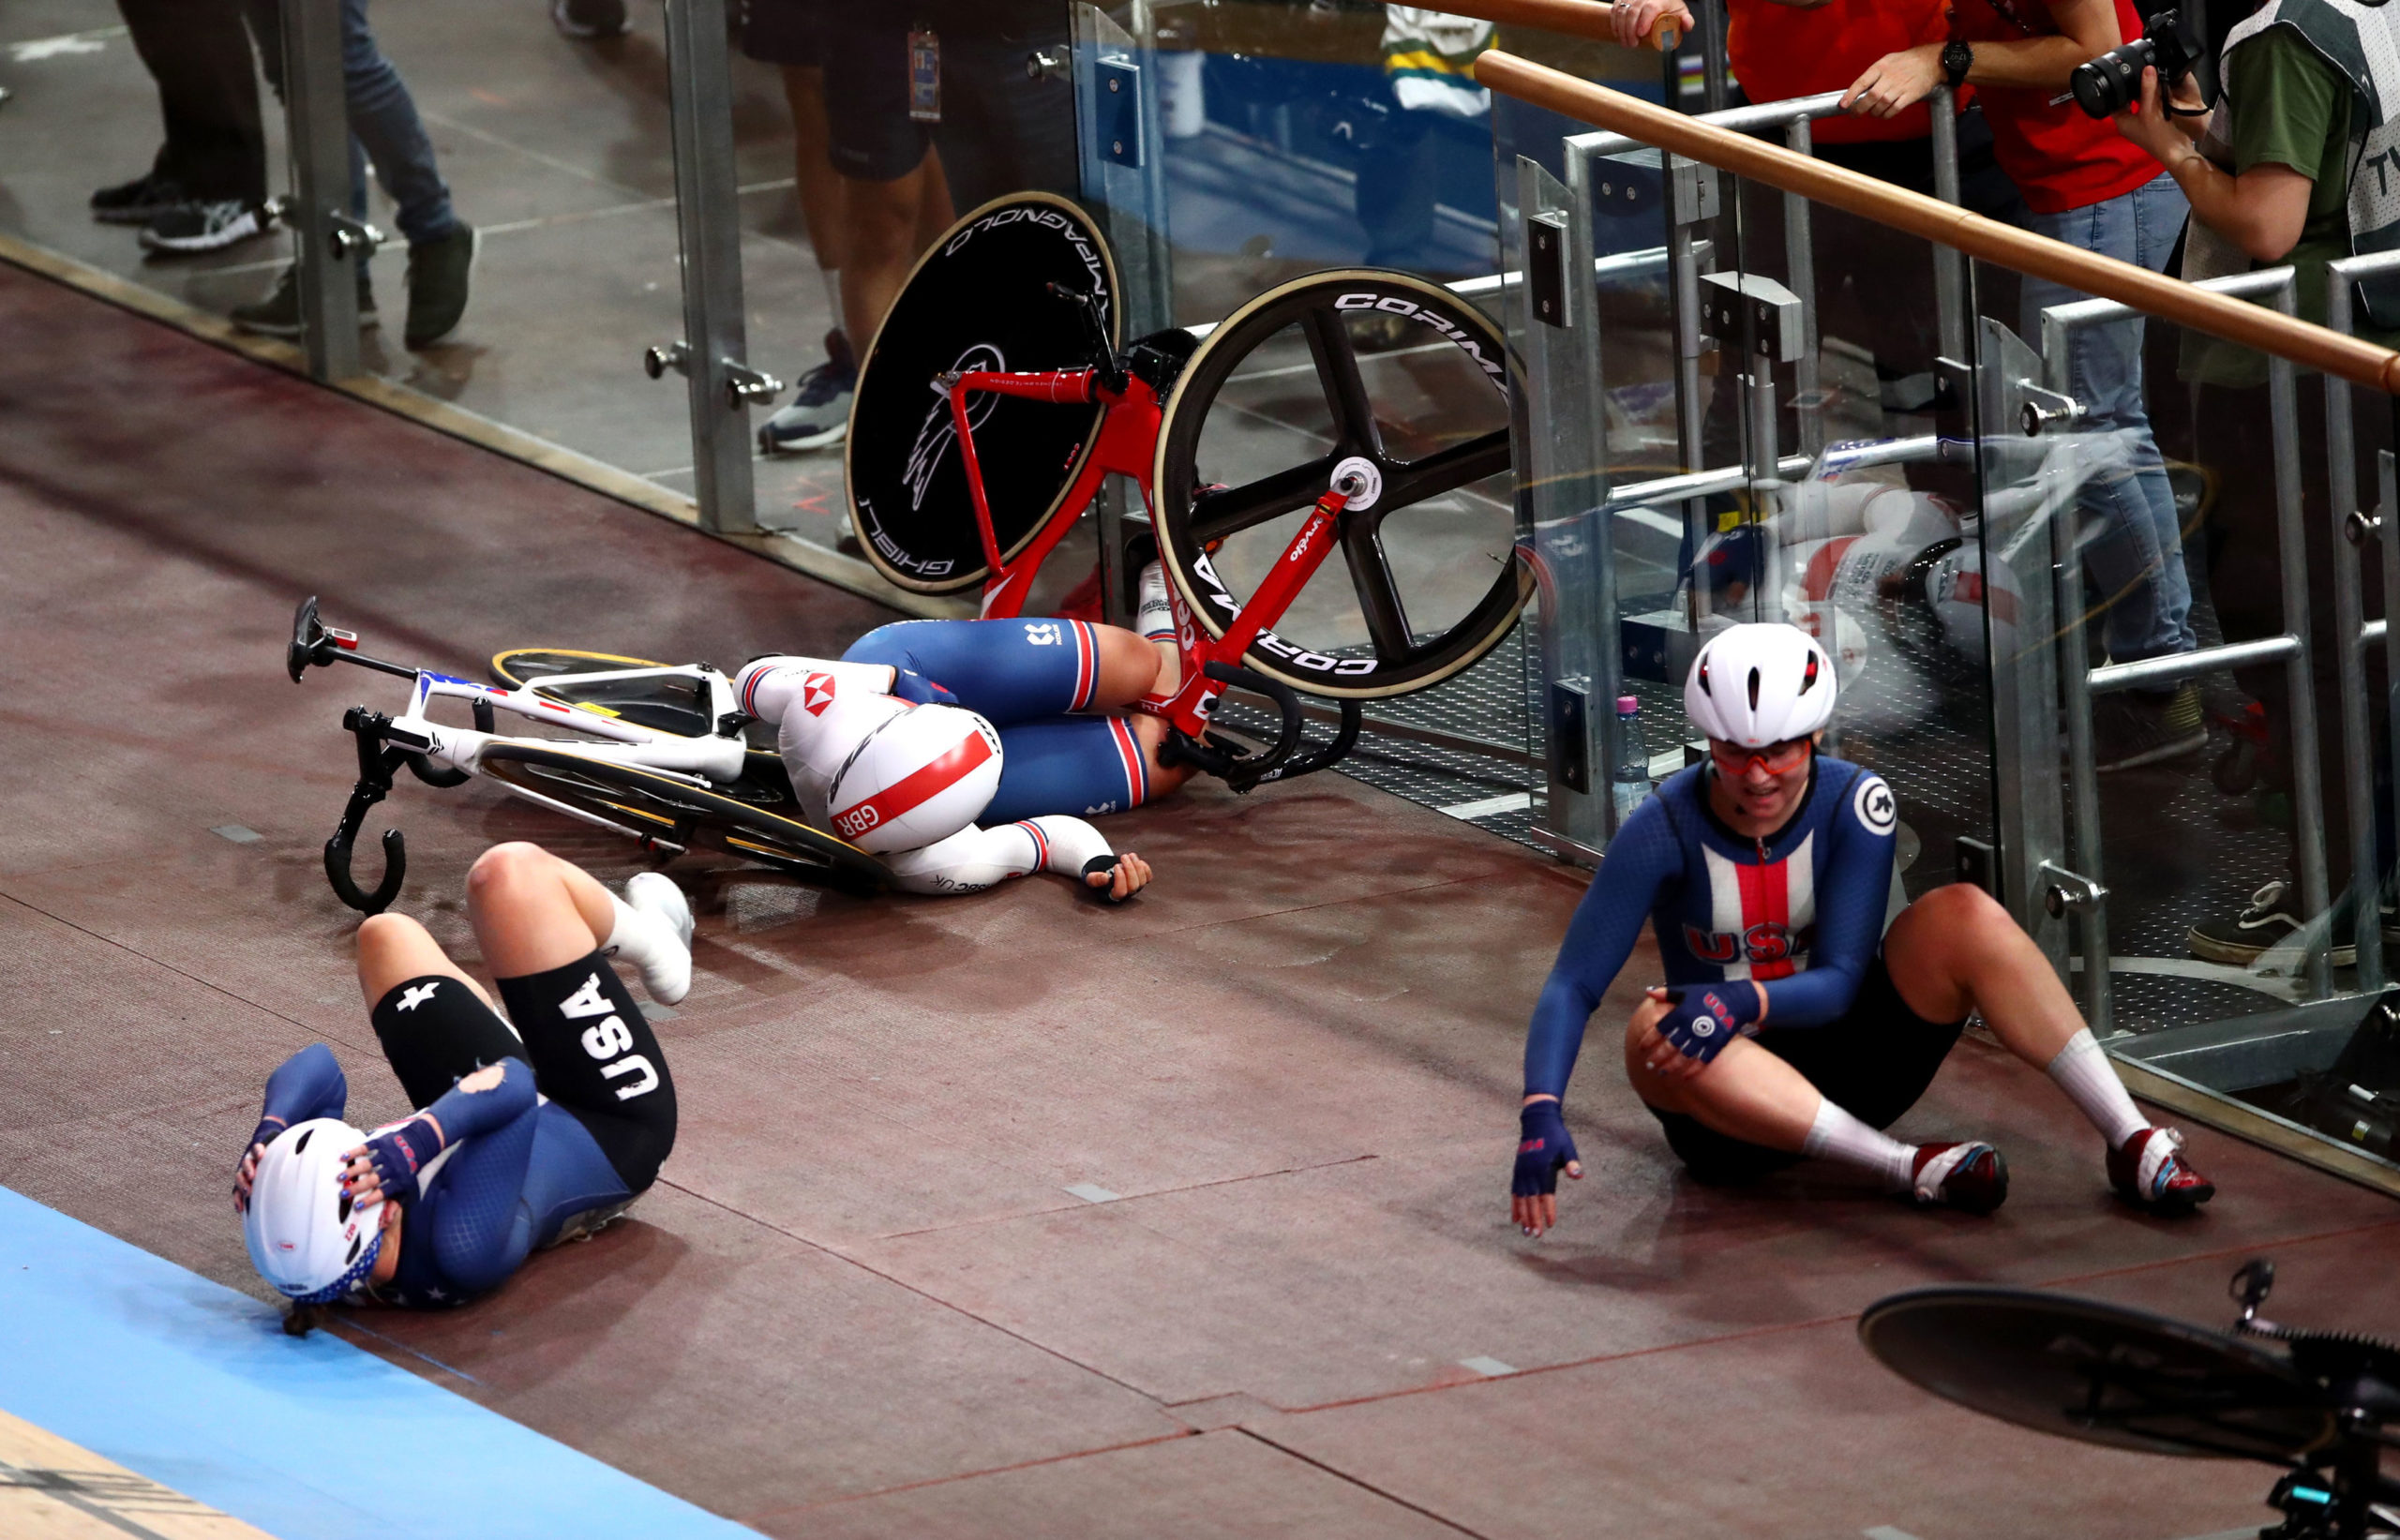 Great Britain's Neah Evans crashes during the women's madison during day four of the 2020 UCI Track Cycling World Championships at Velodrom, Berlin.